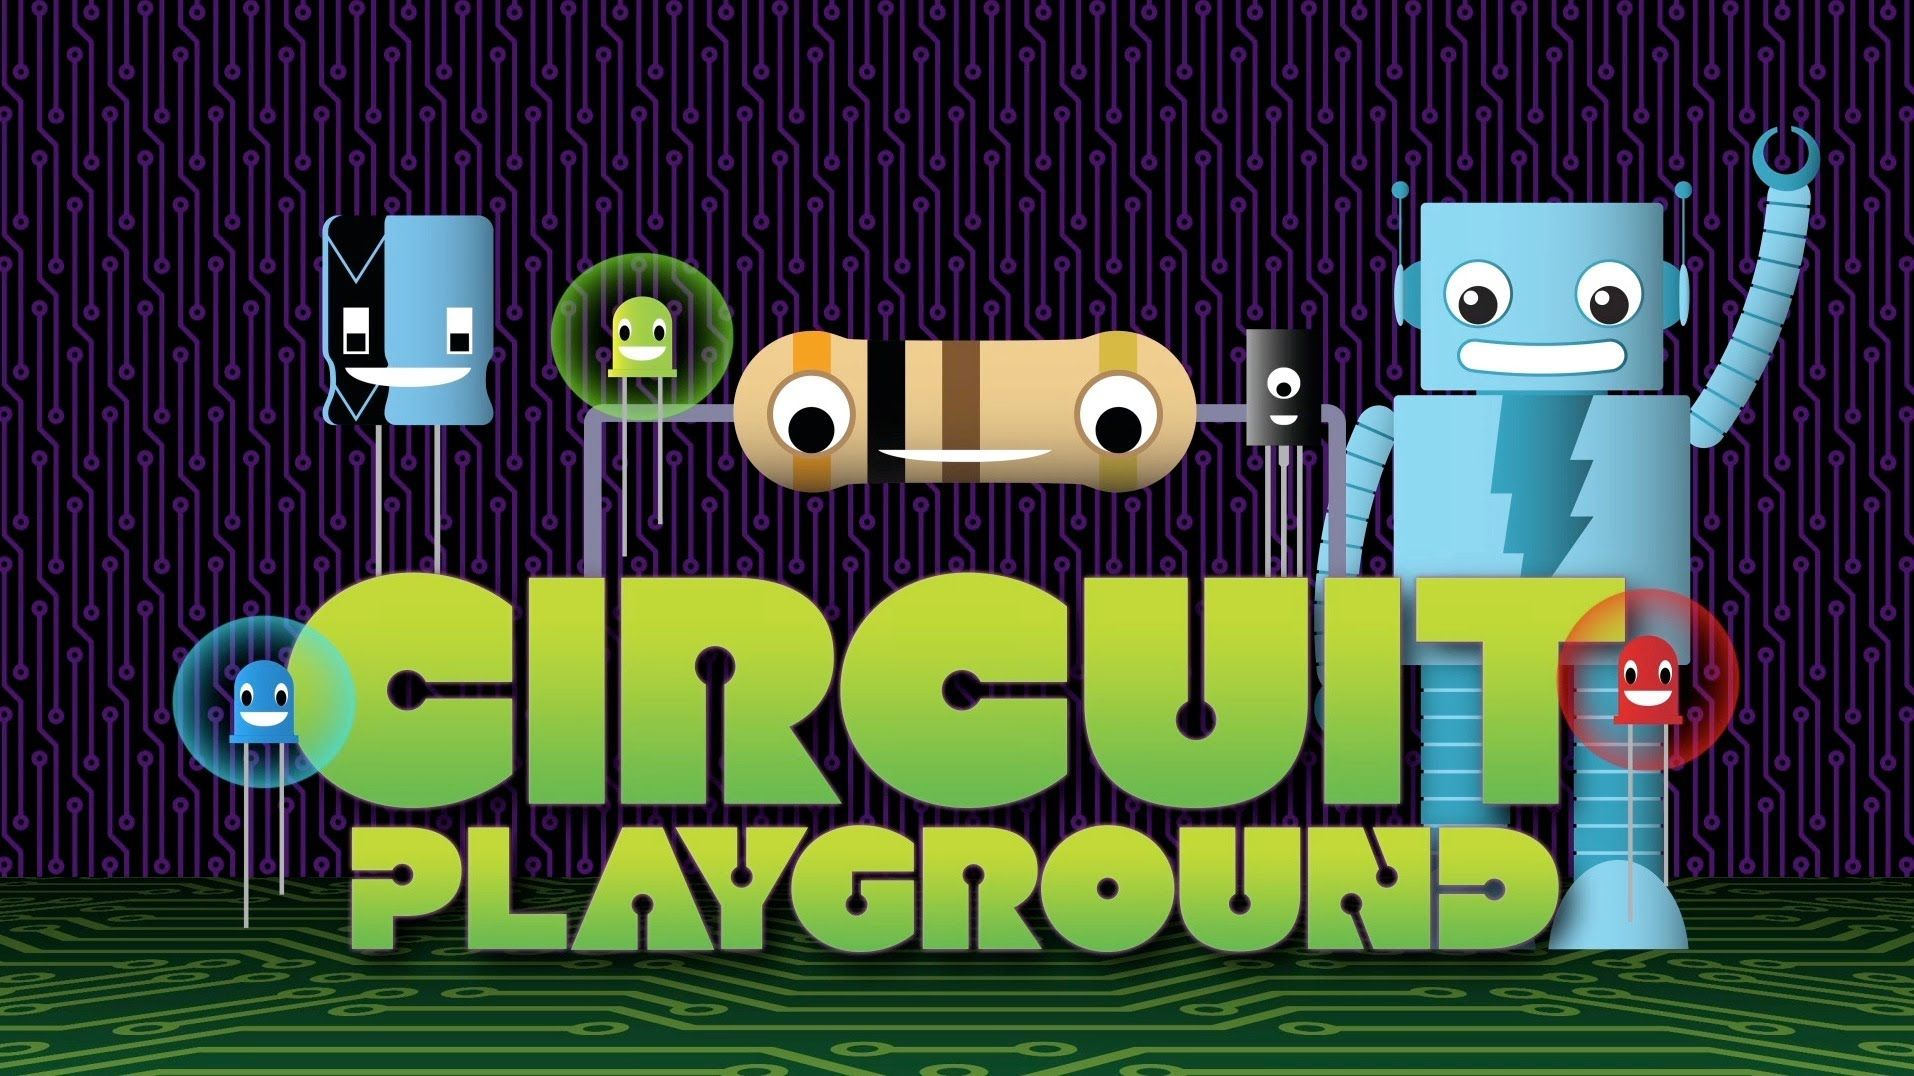 Circuit Playground Is A Kids Show Aiming To Introduce Project On Electric Engineering Through Electronics And